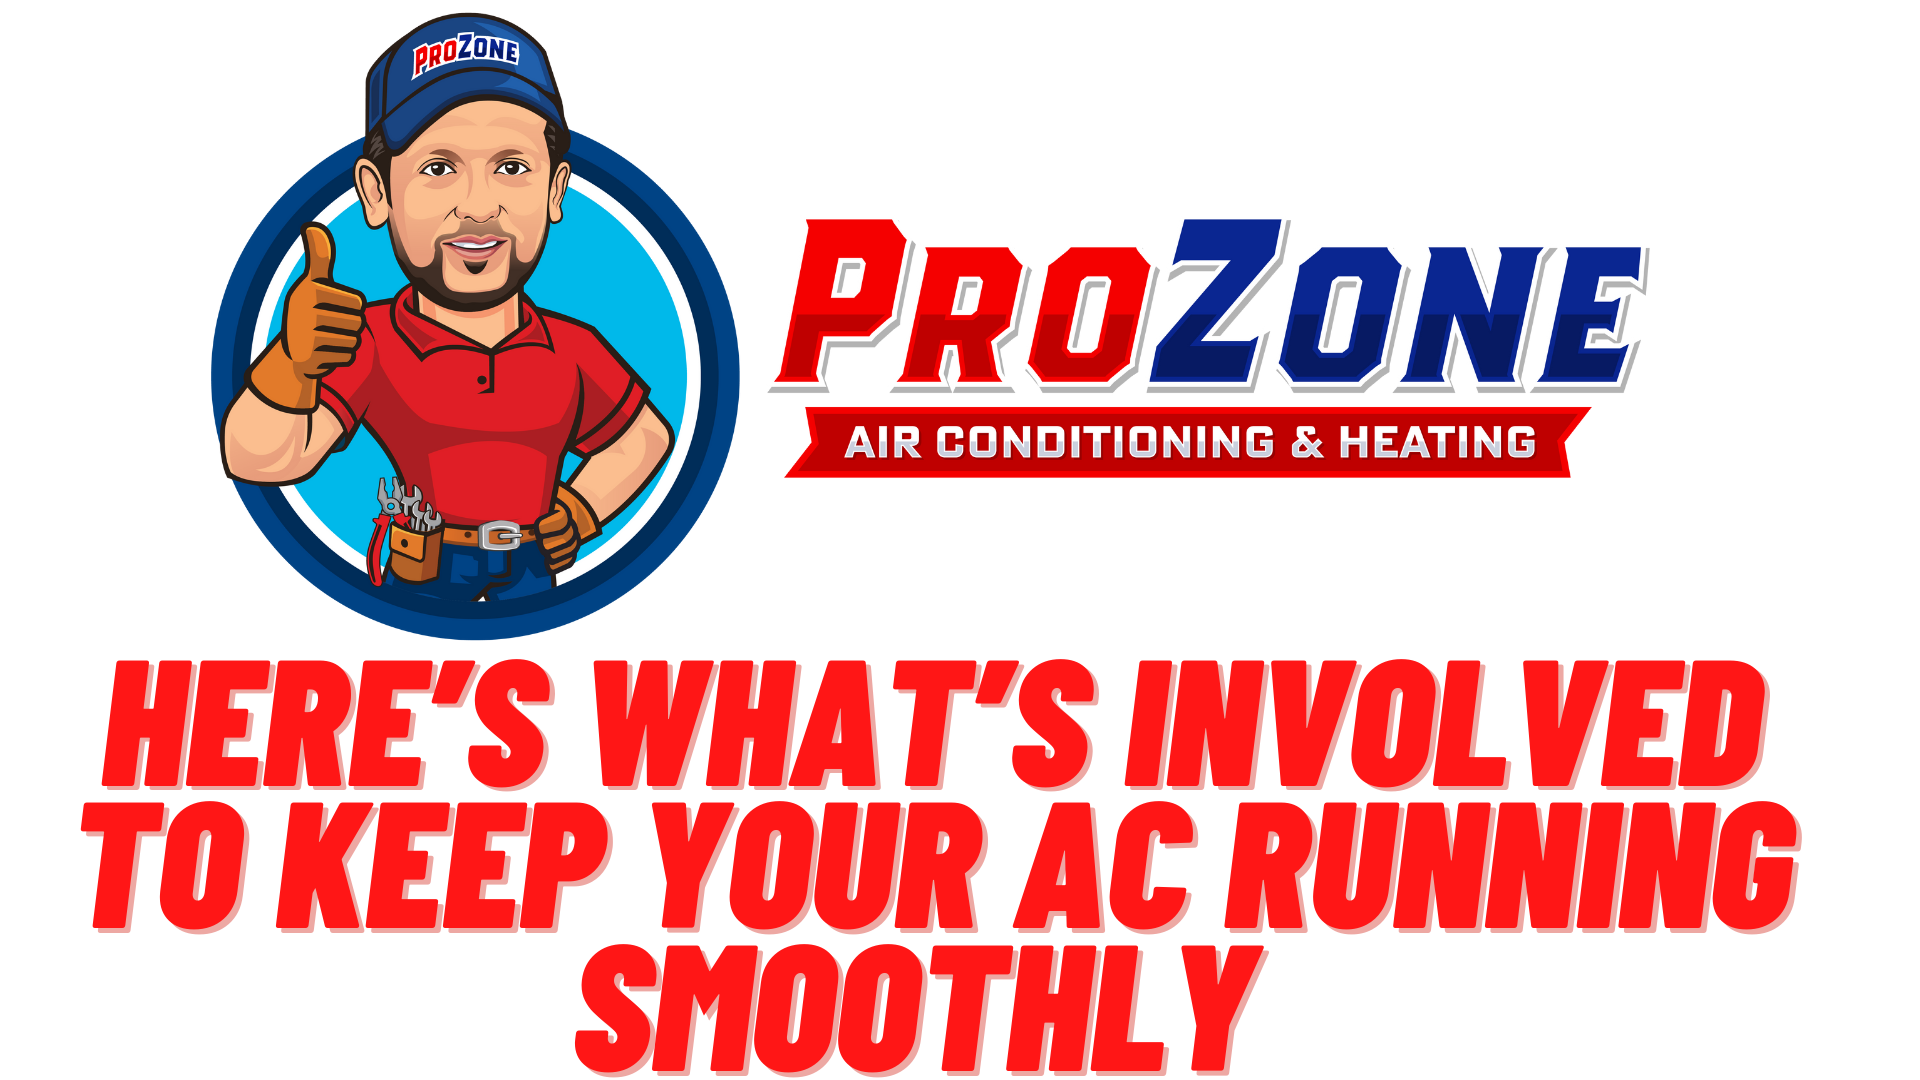 Air Conditioning Service Las Vegas: Here's What's Involved to Keep Your AC Running Smoothly